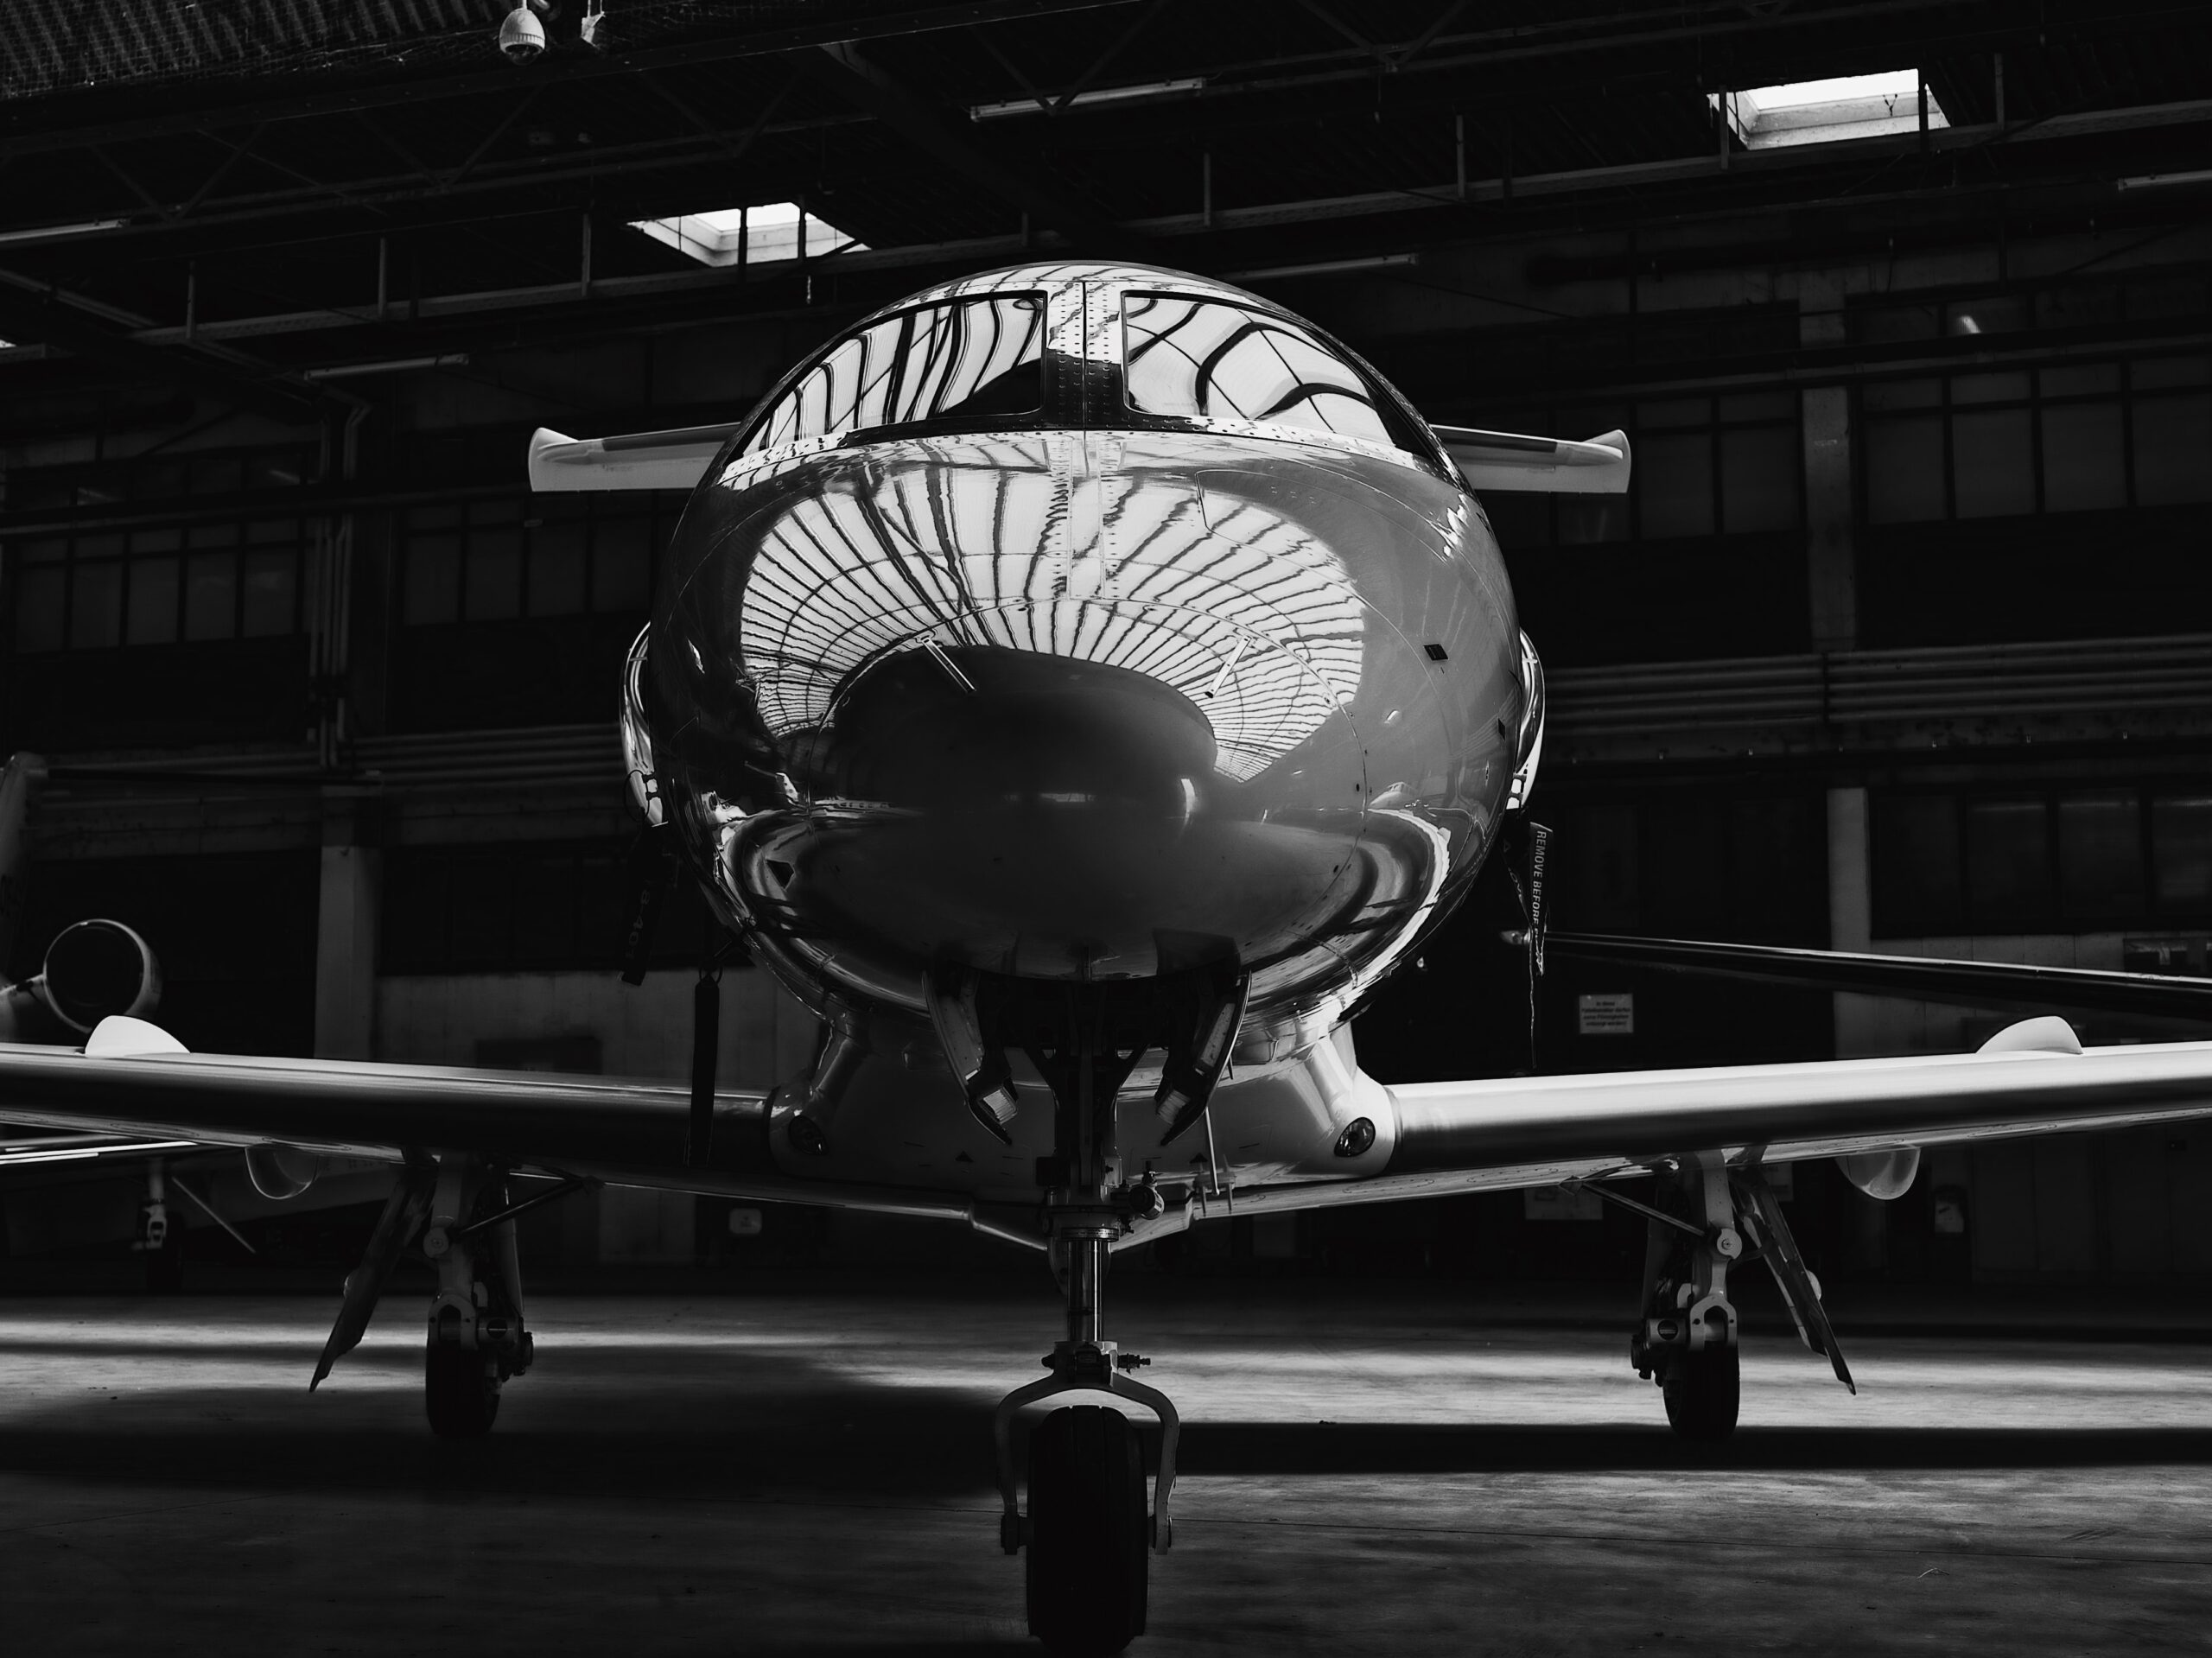 Maintenance planning in the Aviation industry